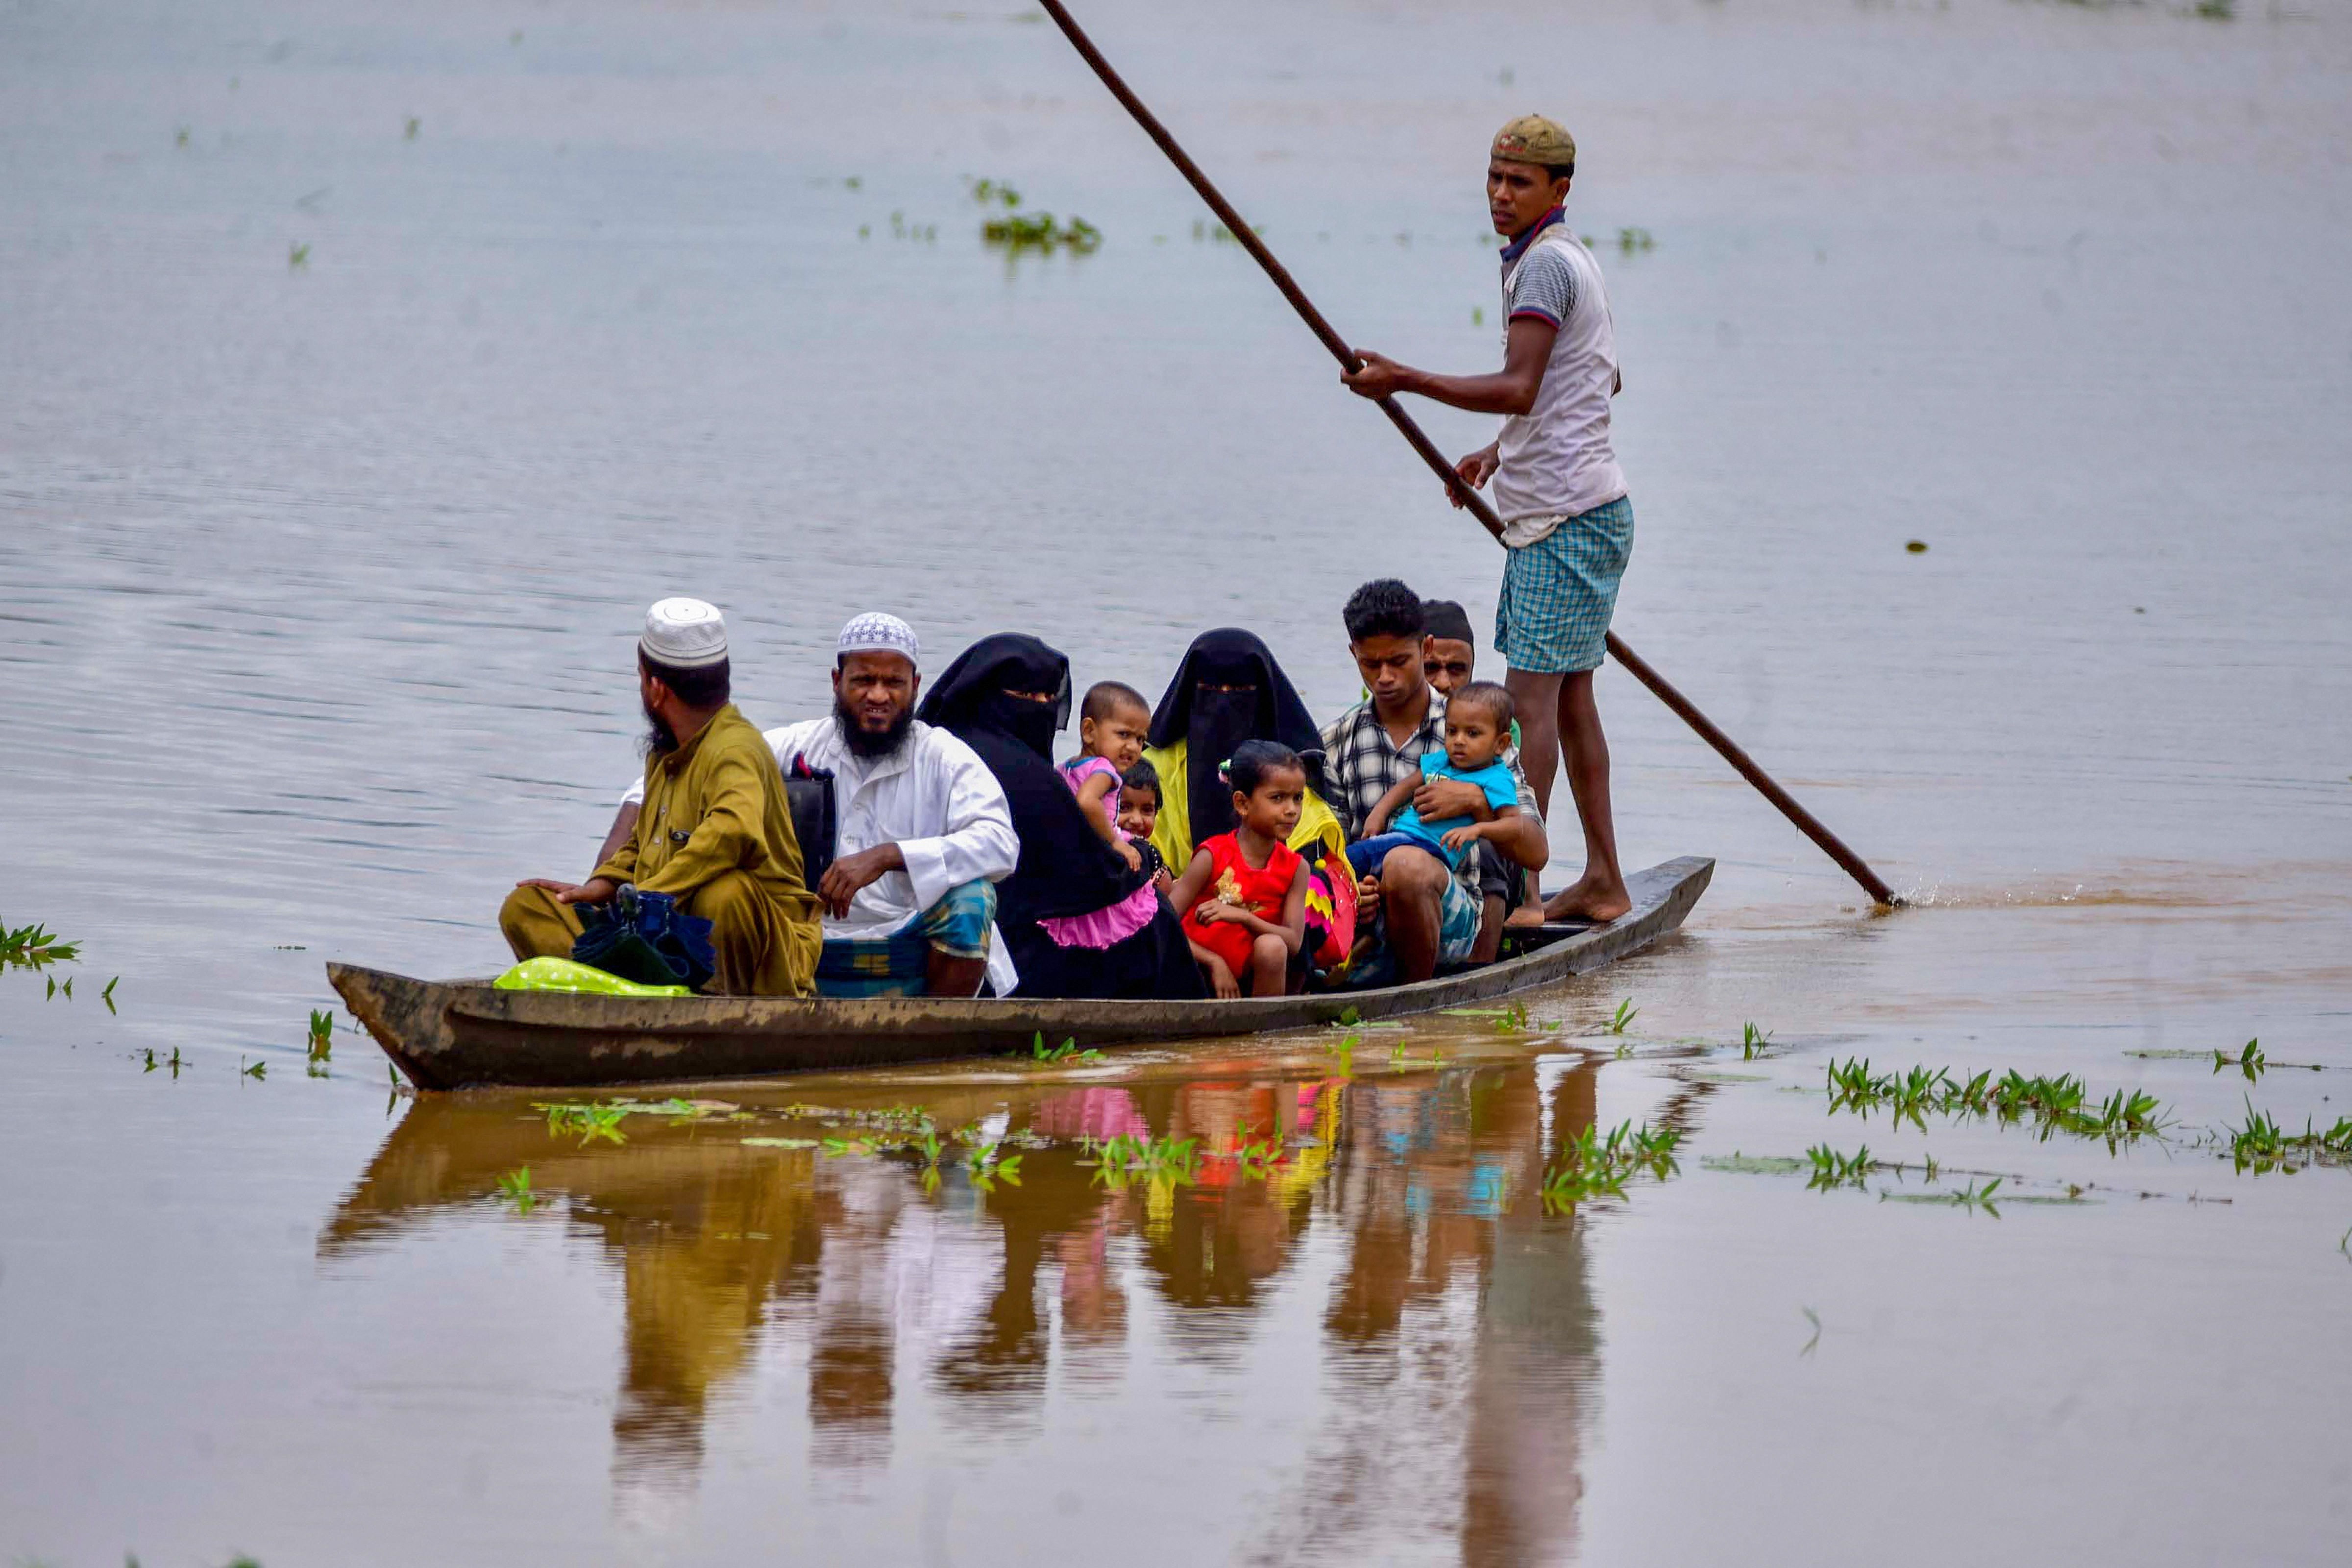 Nagaon: Villagers affected by flood move towards a safer place, in Nagaon district, Wednesday, July 22, 2020. (PTI Photo)(PTI22-07-2020_000220B)